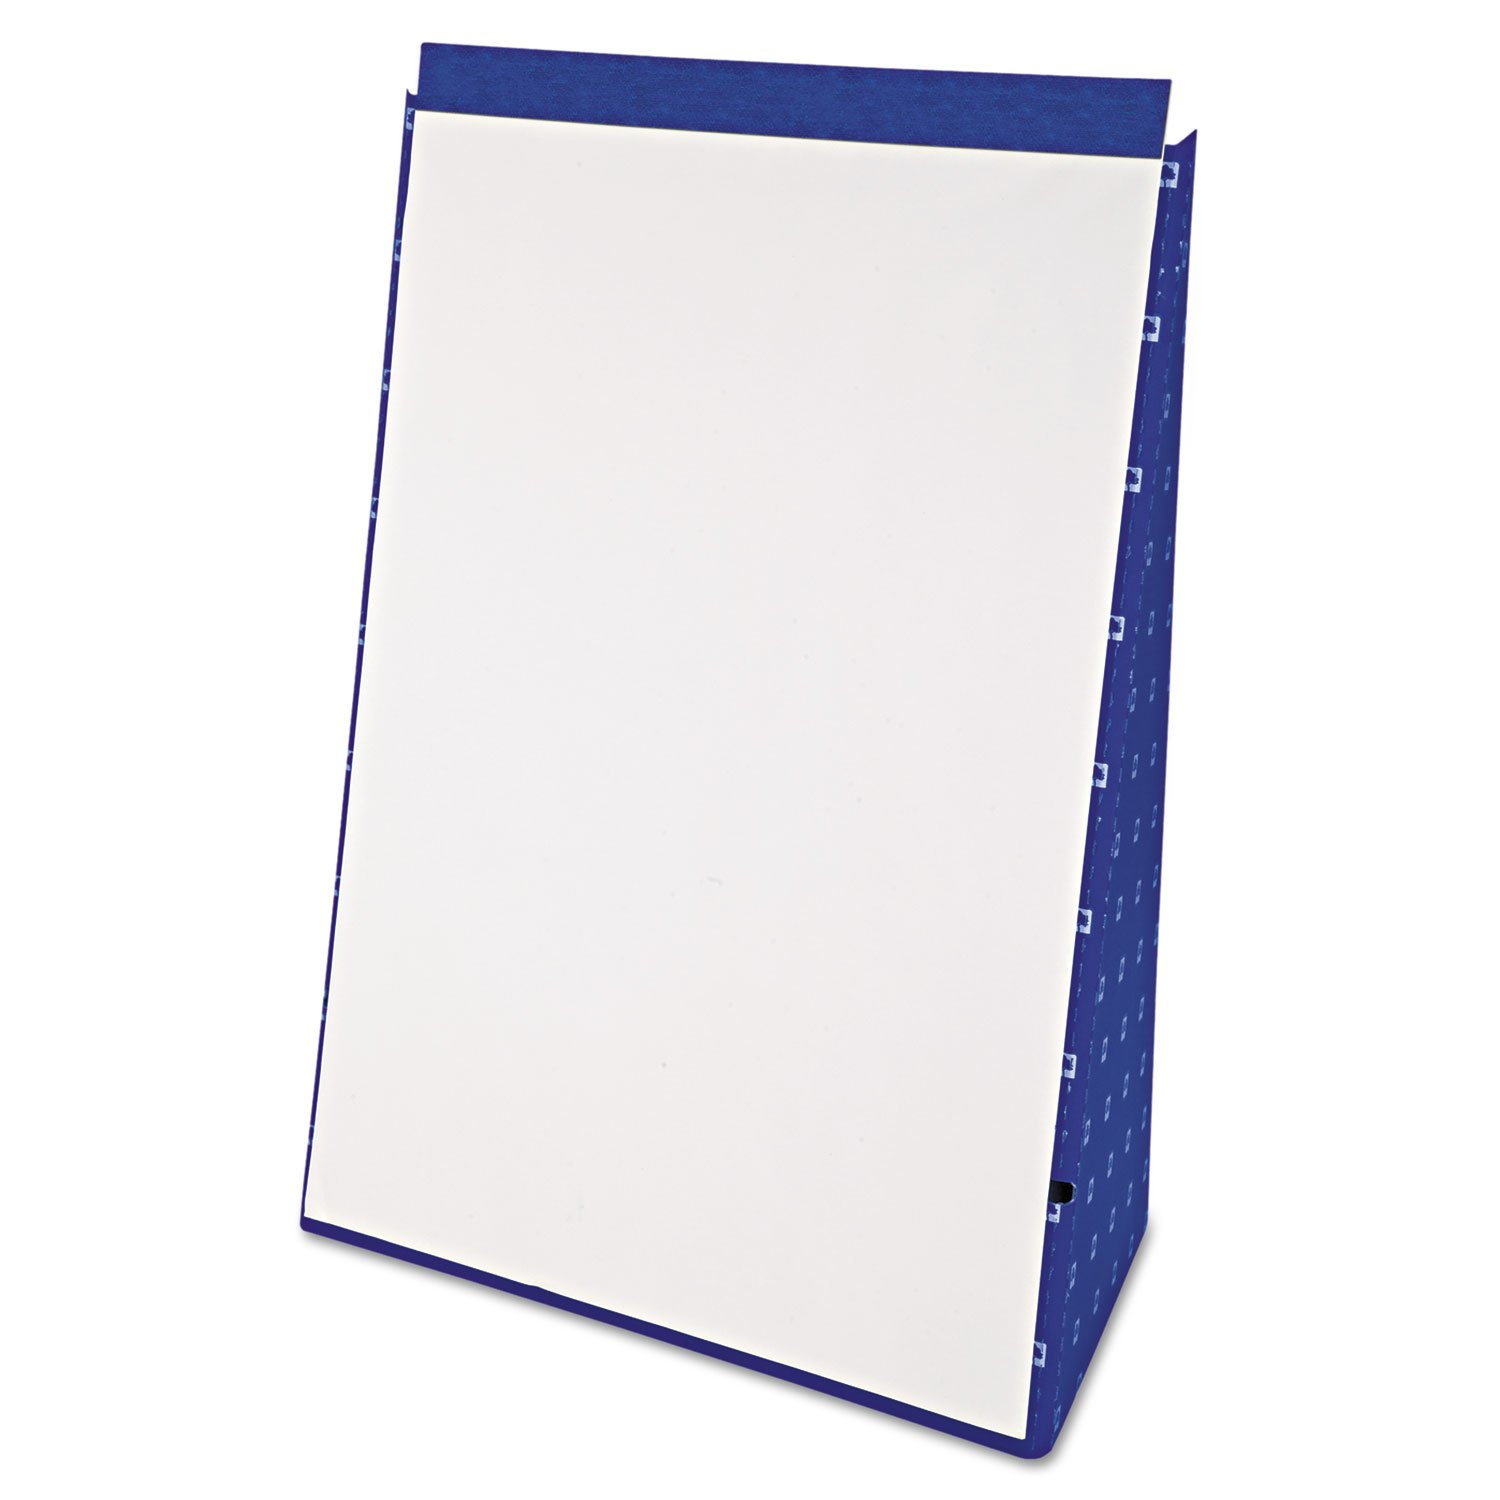 Ampad 24022 Table Top Flip Chart, Plain, 20 Sheets, 20-Inch x28-Inch, White by Ampad